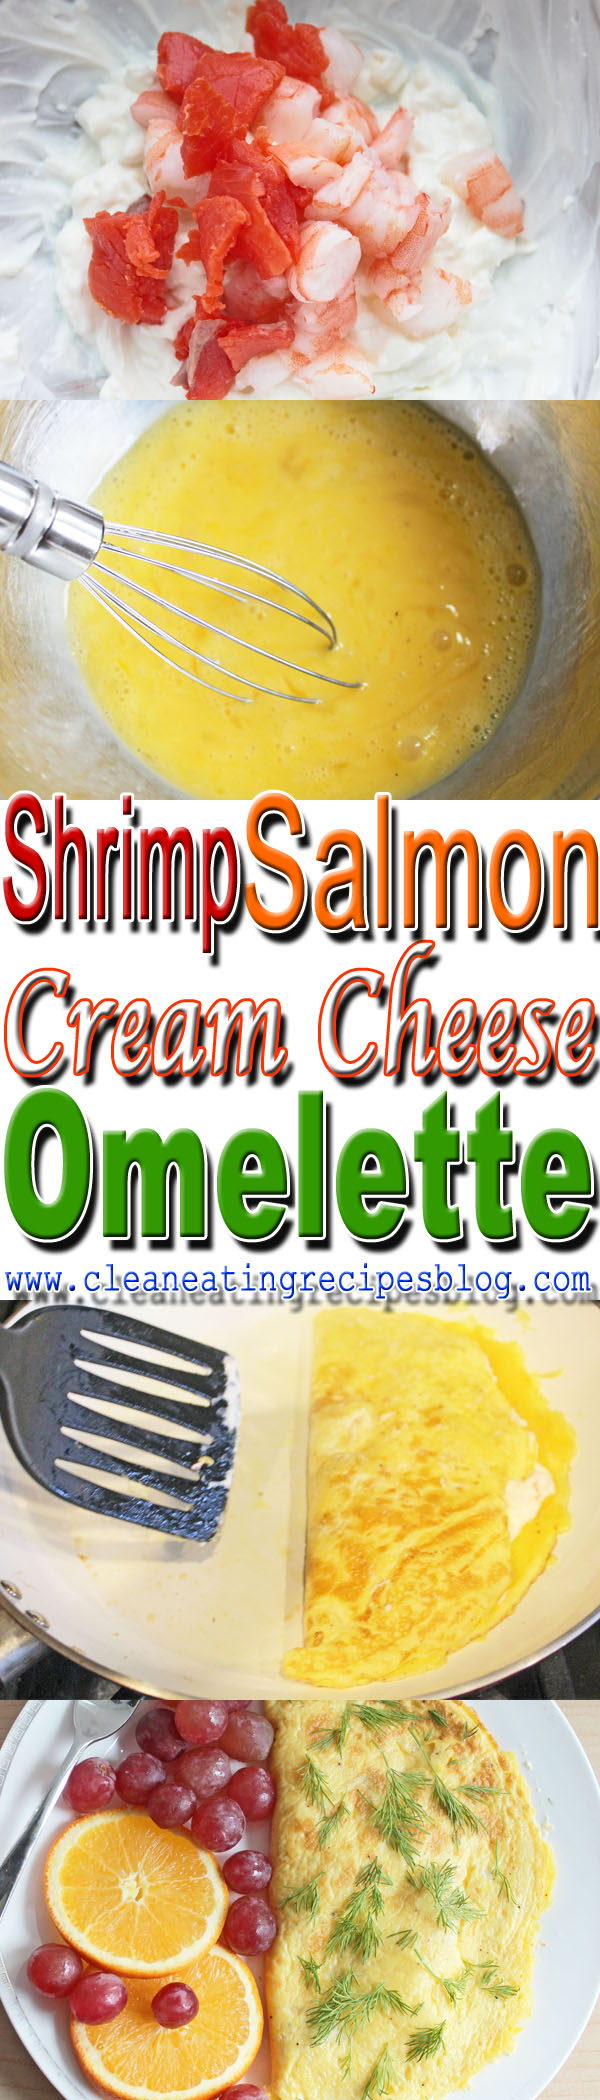 clean eating recipe - cream cheese omelette